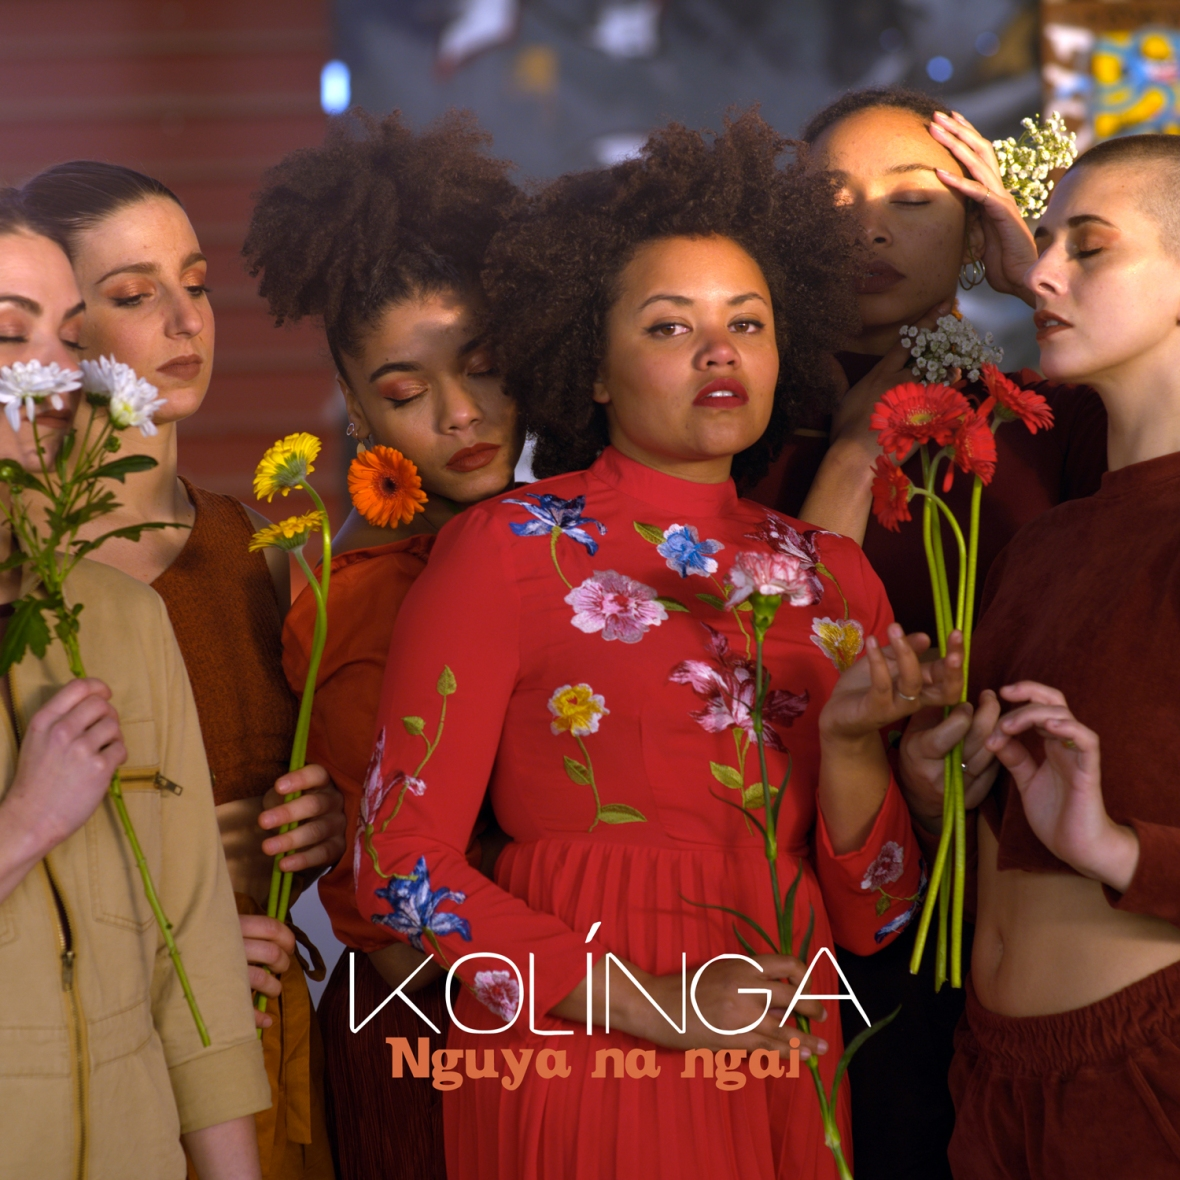 KOLINGA - Nguya na ngai (Official Music Video)